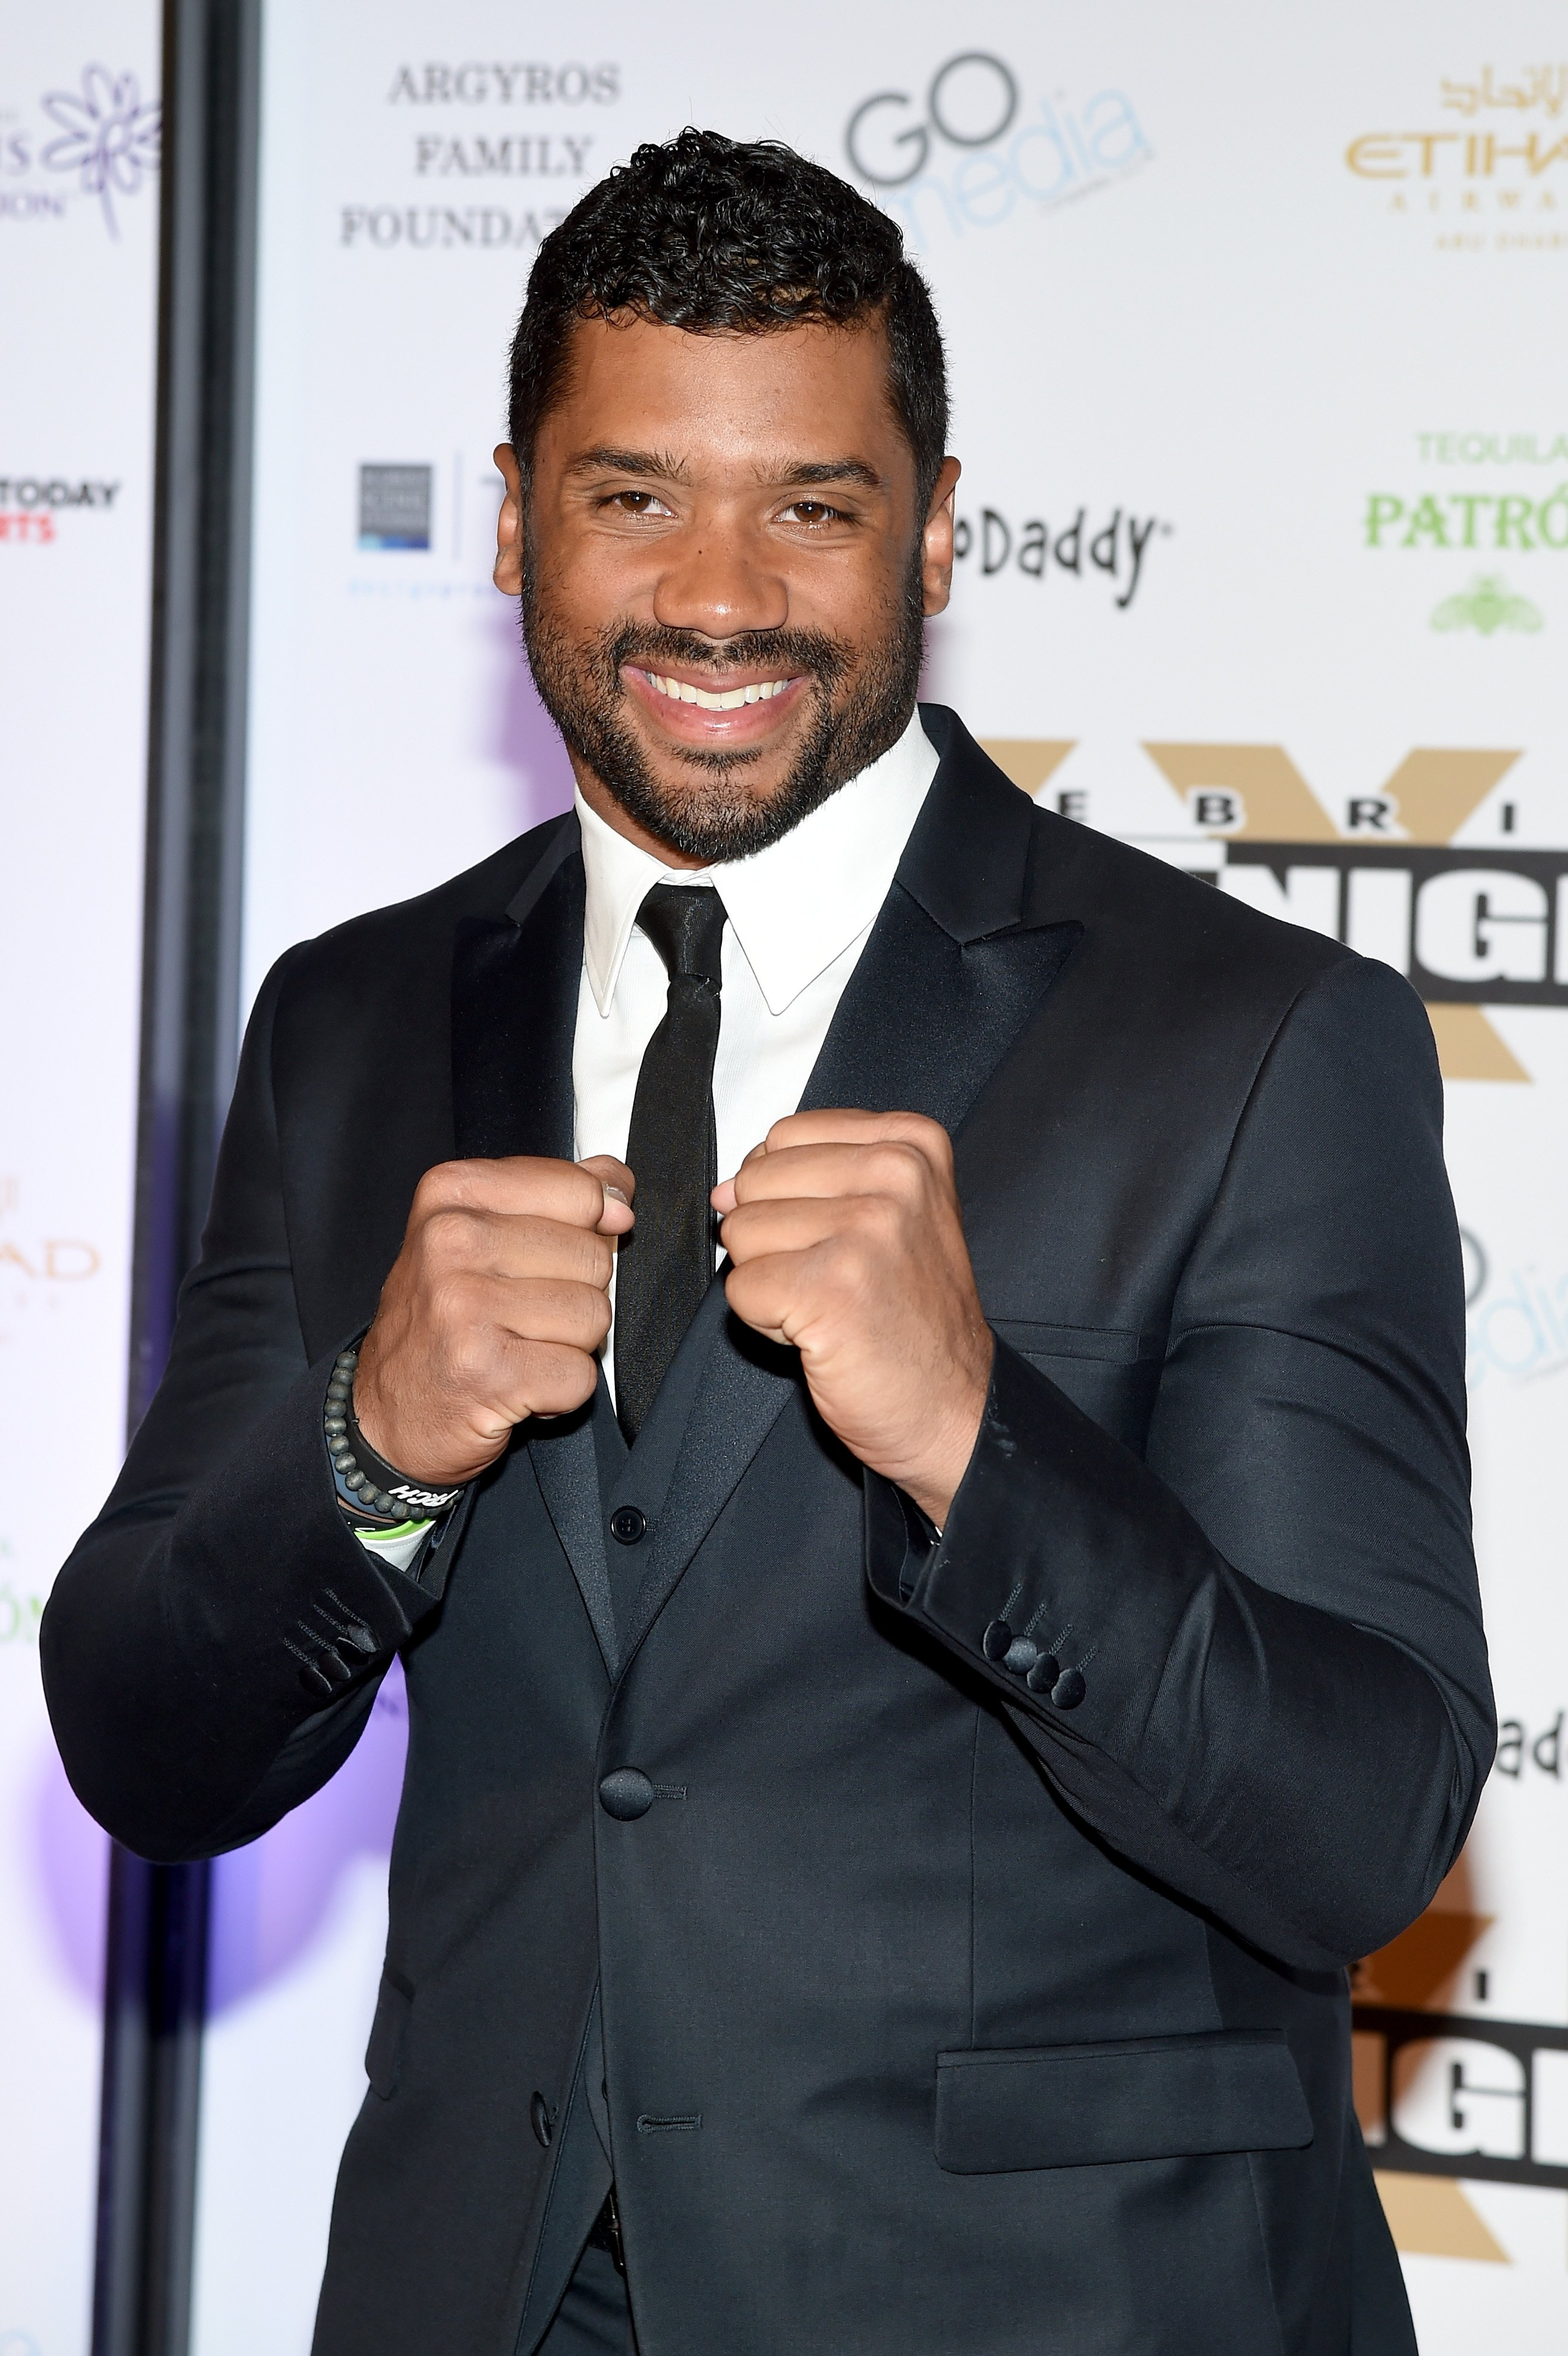 Russell Wilson at Muhammad Ali's Celebrity Fight Night XXI at the JW Marriott Phoenix Desert Ridge Resort & Spa on March 28, 2015 in Phoenix, Arizona.|Source: Getty Images